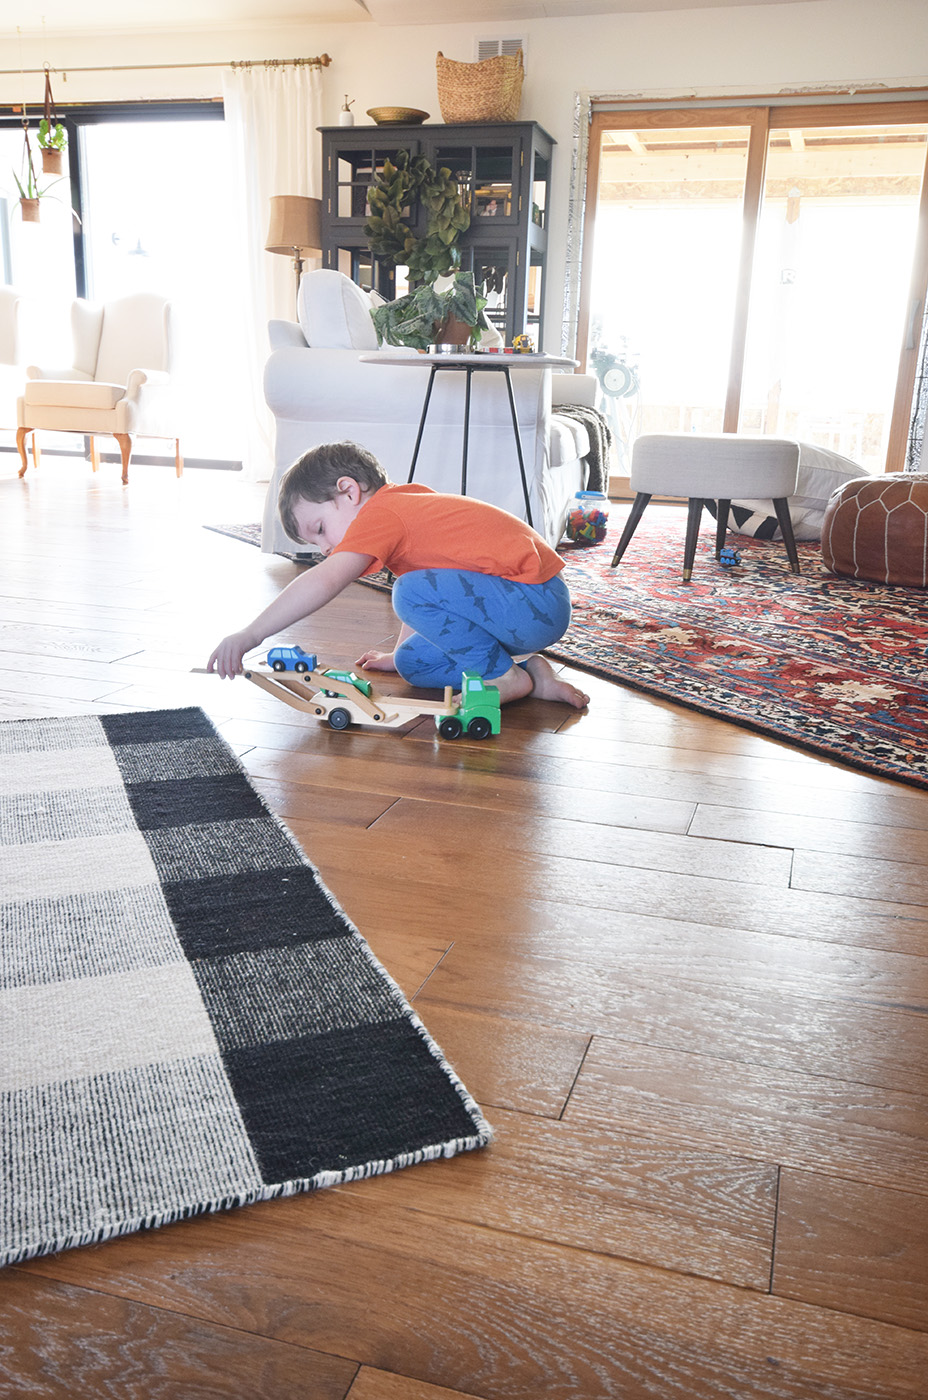 Hardwood Flooring Installation After son playing with trucks